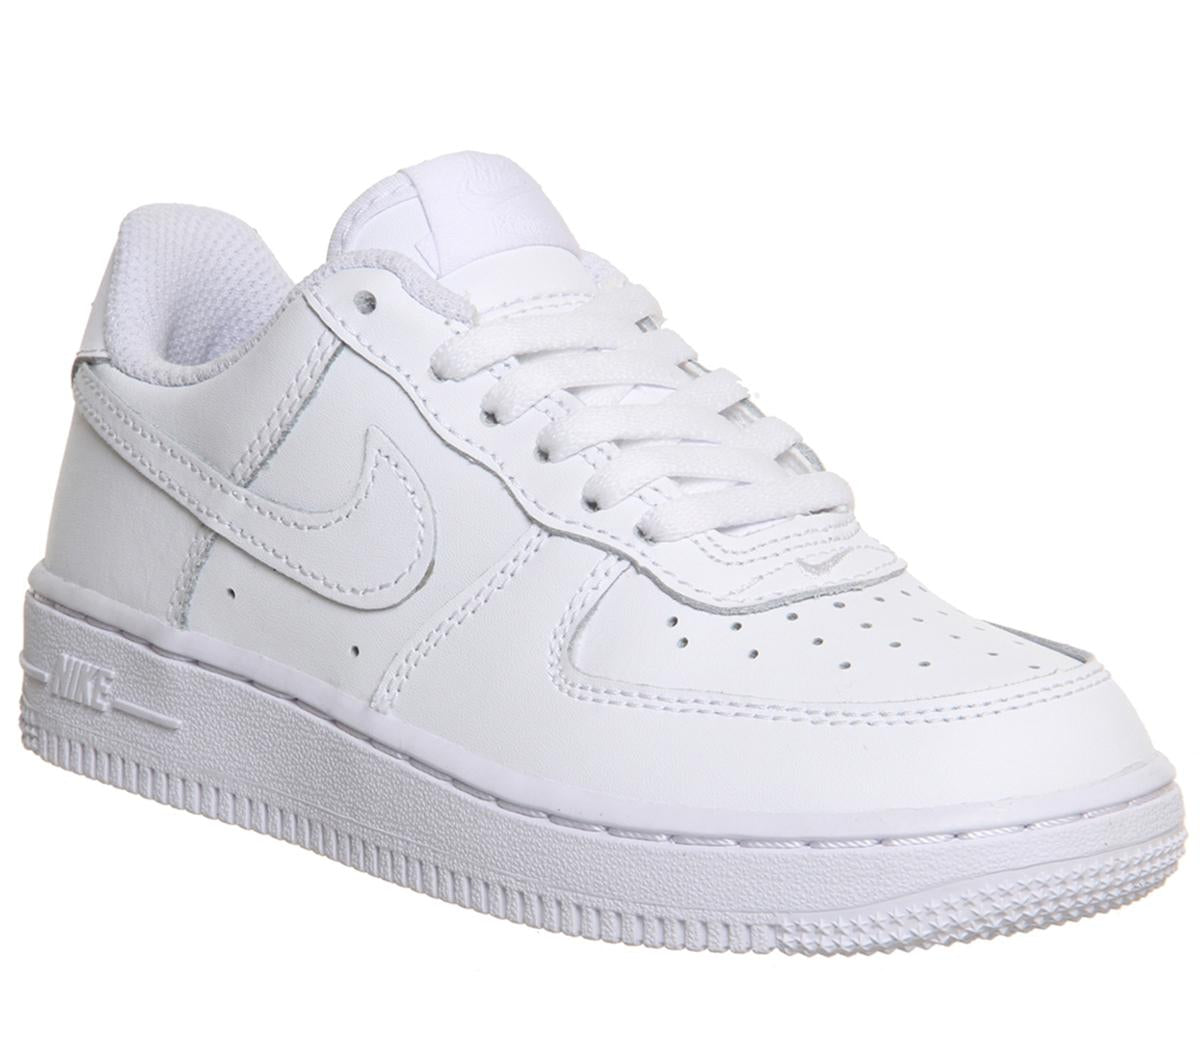 12f626601b Kids Nike Air Force 1 Whitewhite Uk Size 10 Youth – OFFCUTS SHOES by ...